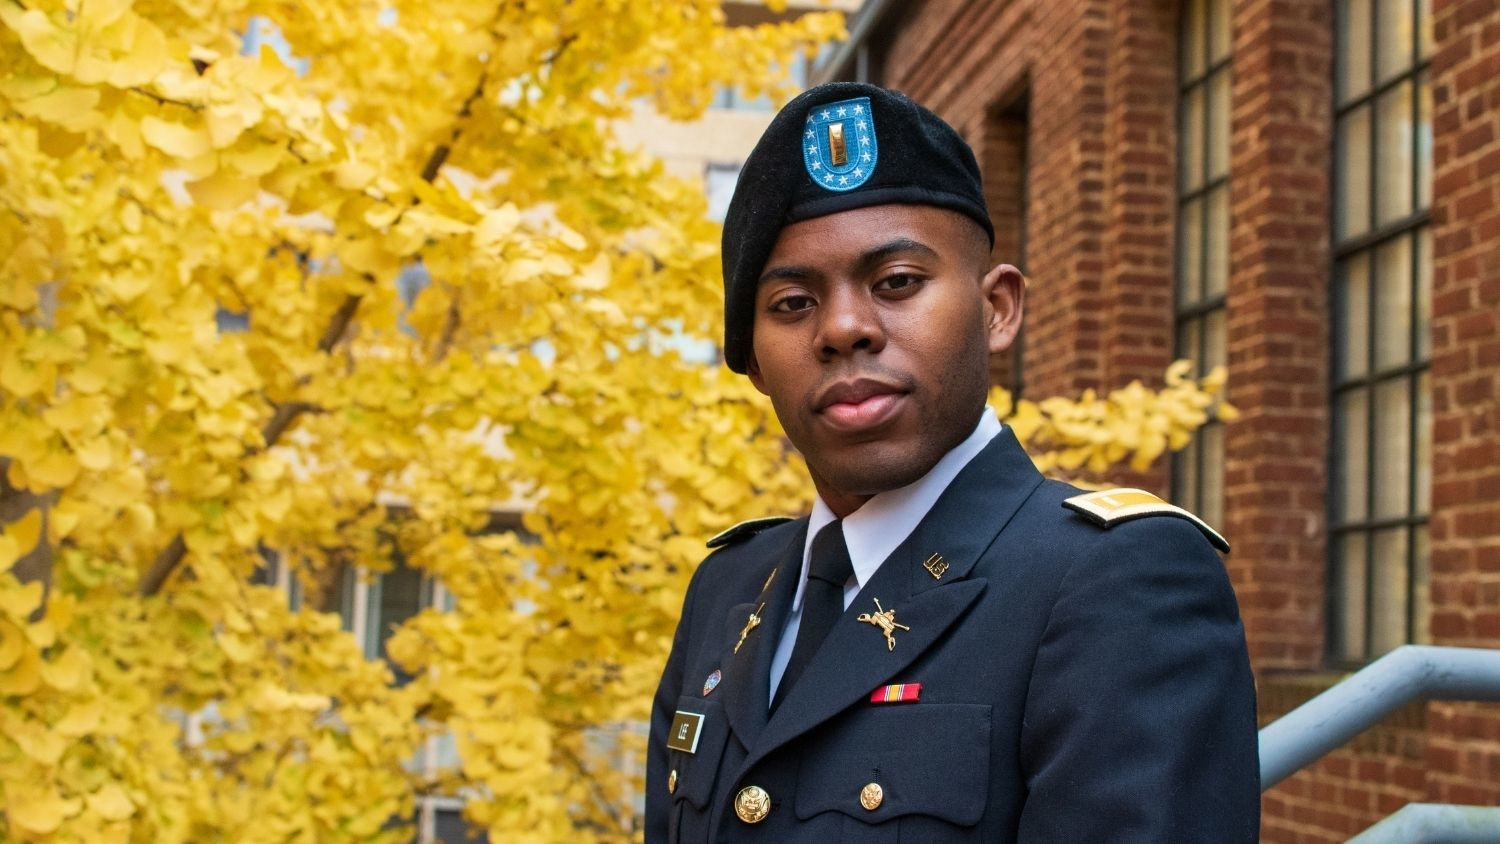 Teshawn Lee in Uniform - Five Questions with Second Lieutenant Teshawn Lee, College of Natural Resources, Teshawn Lee, feature - College of Natural Resources at NCState University